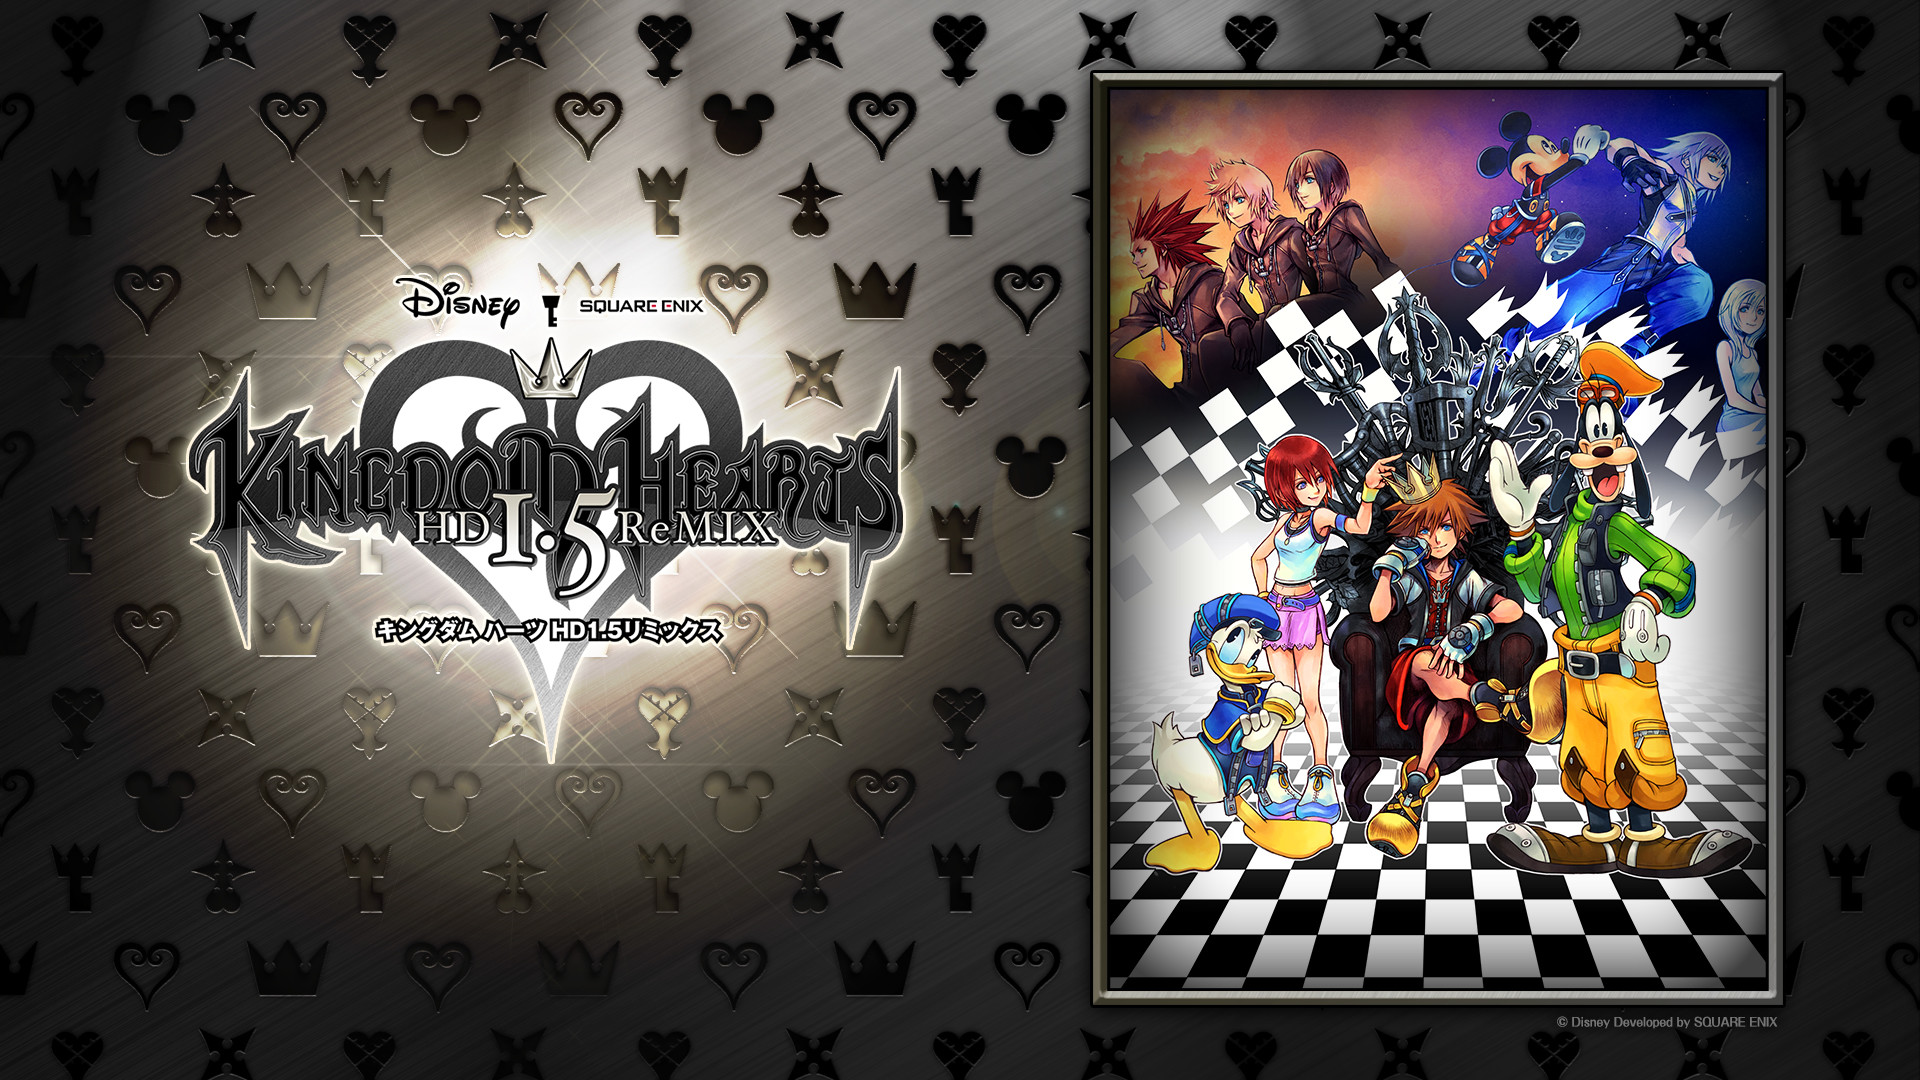 1920x1080 Oficial wallpaper Kingdom Hearts HD I.5 ReMIX Sora, Kairi, Riku, Donal,  Goofy, Mickey, Namine, Xion, Roxas and Axel | Kingdom Hearts HD I.5 ReMIX  ...